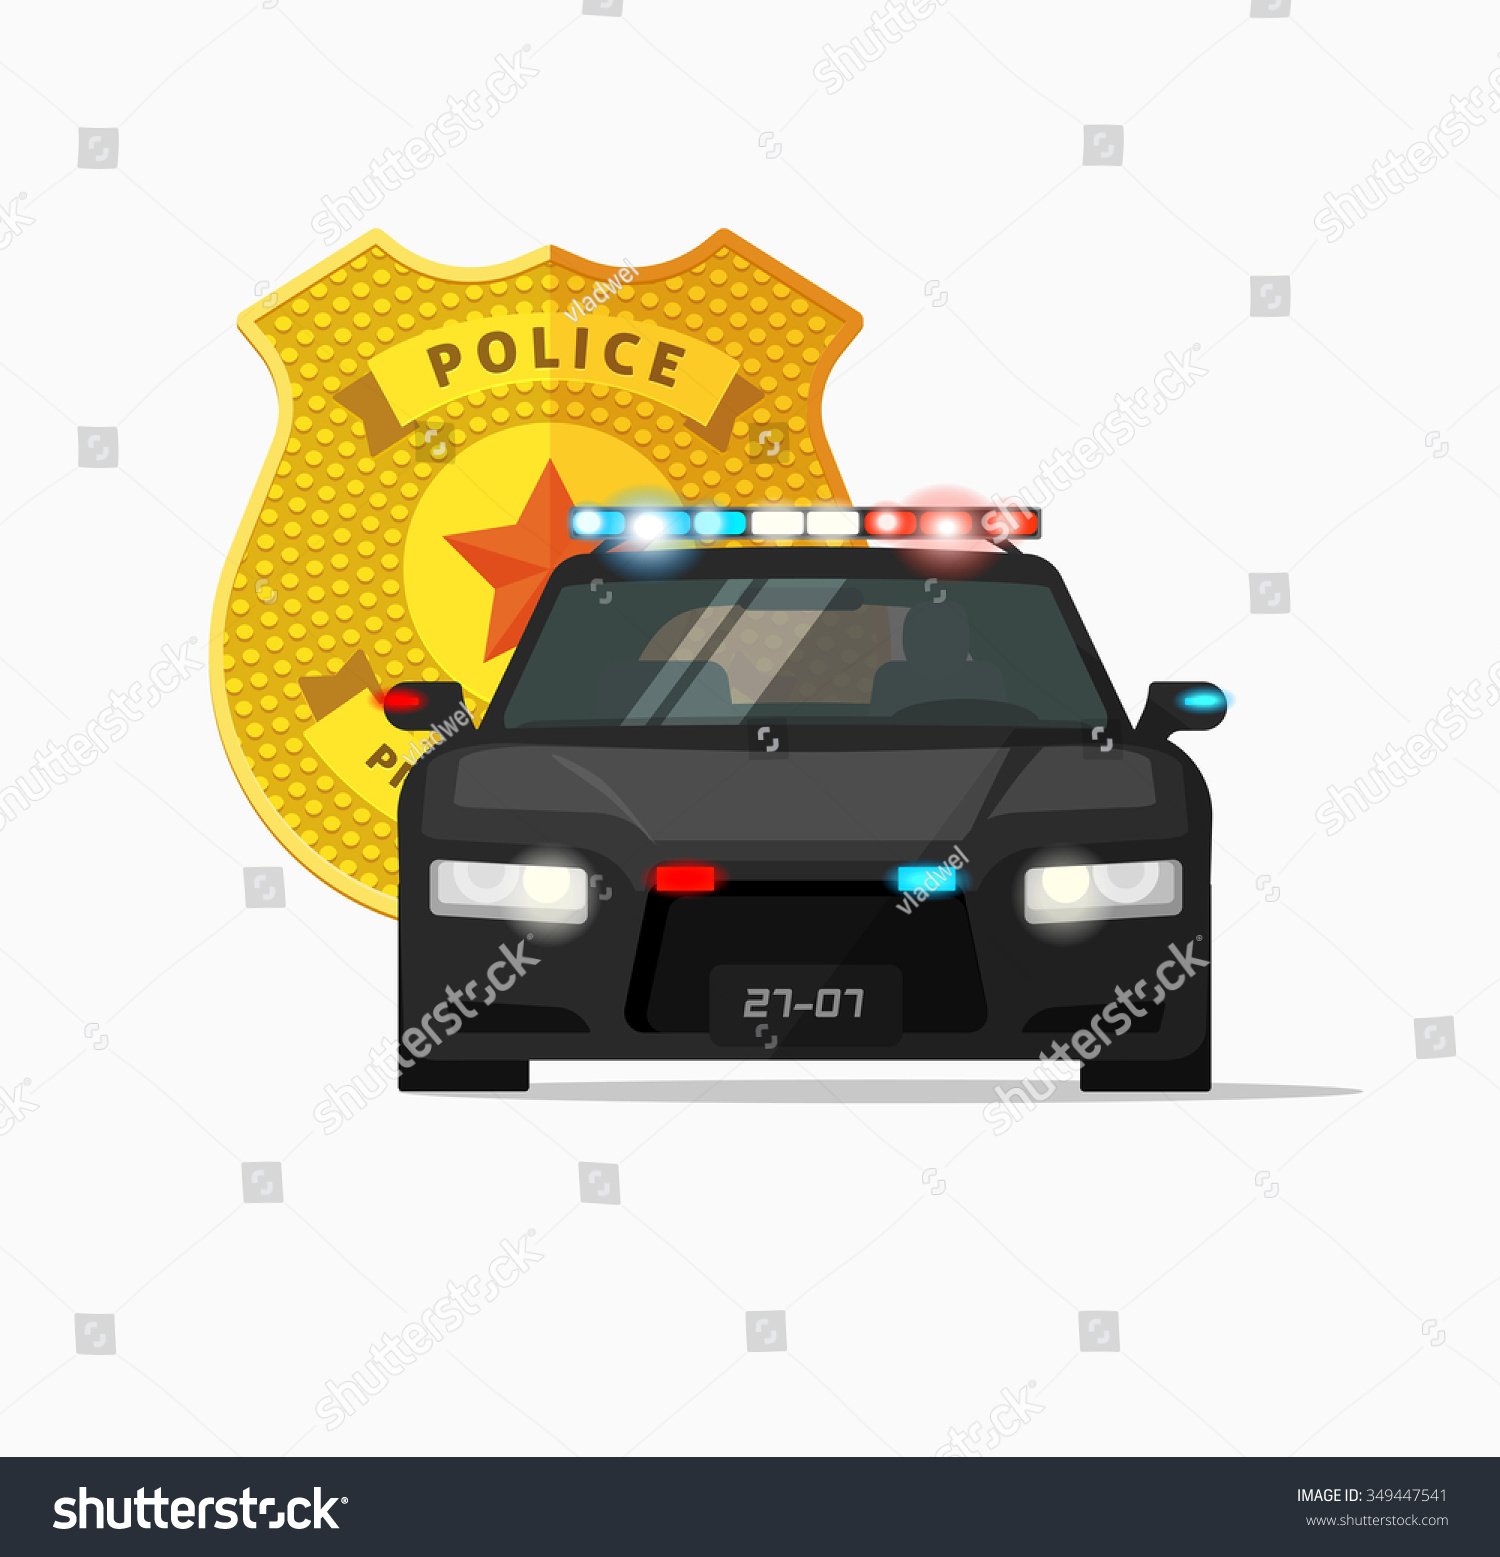 high performance police Get a great deal on this used 2010 ford crown victoria police interceptor and find a great selection of other used at high performance motors inc in nokesville, va 20181.